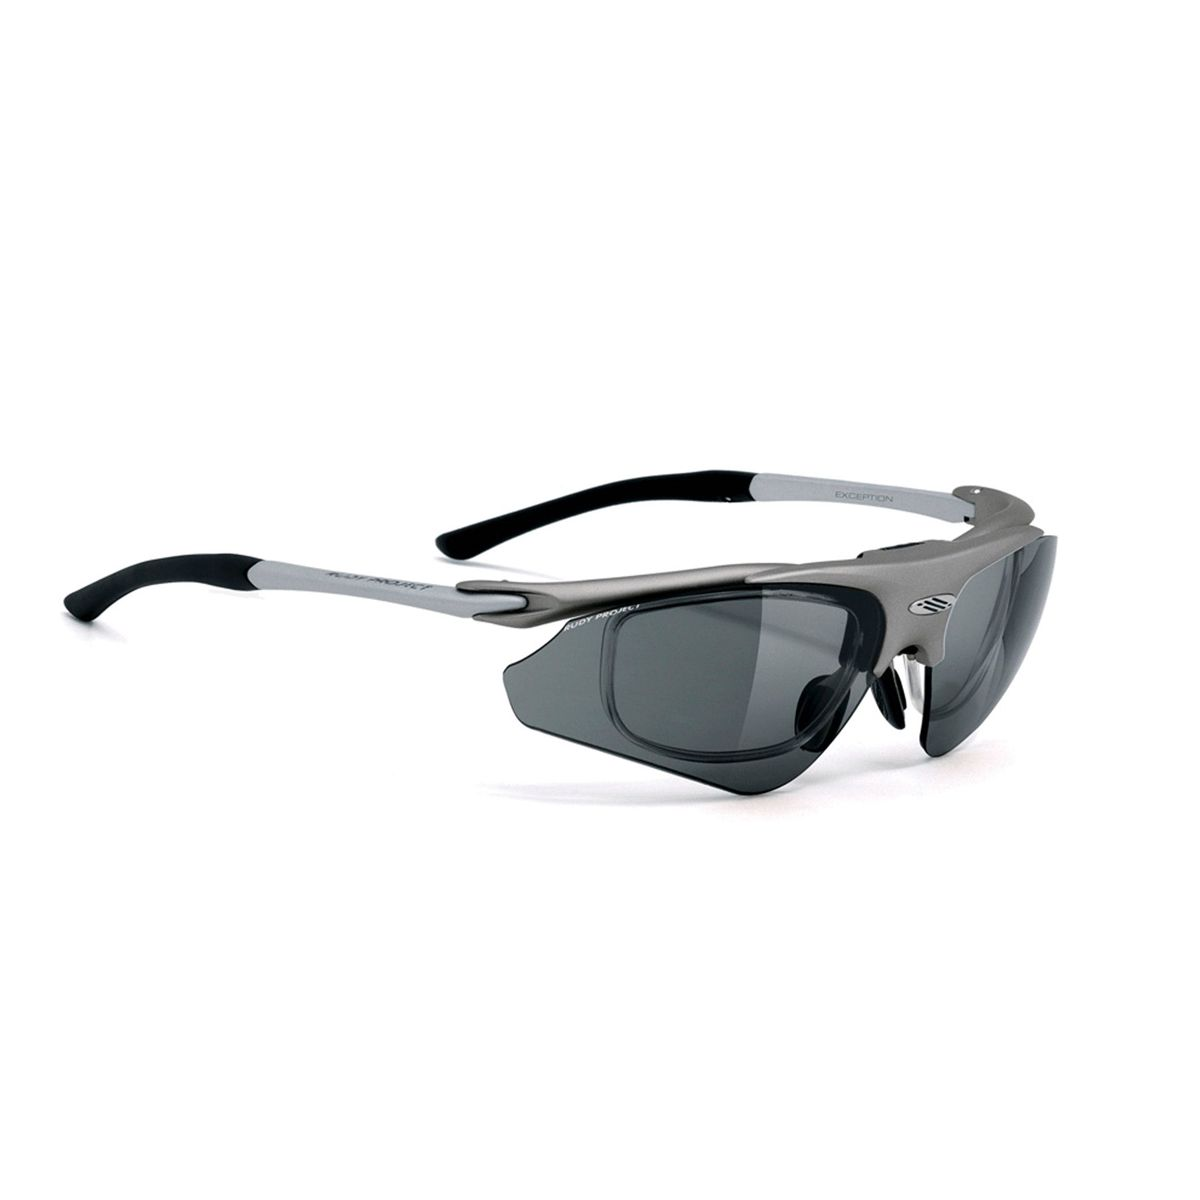 RUDY PROJECT EXCEPTION flip-up glasses | Briller